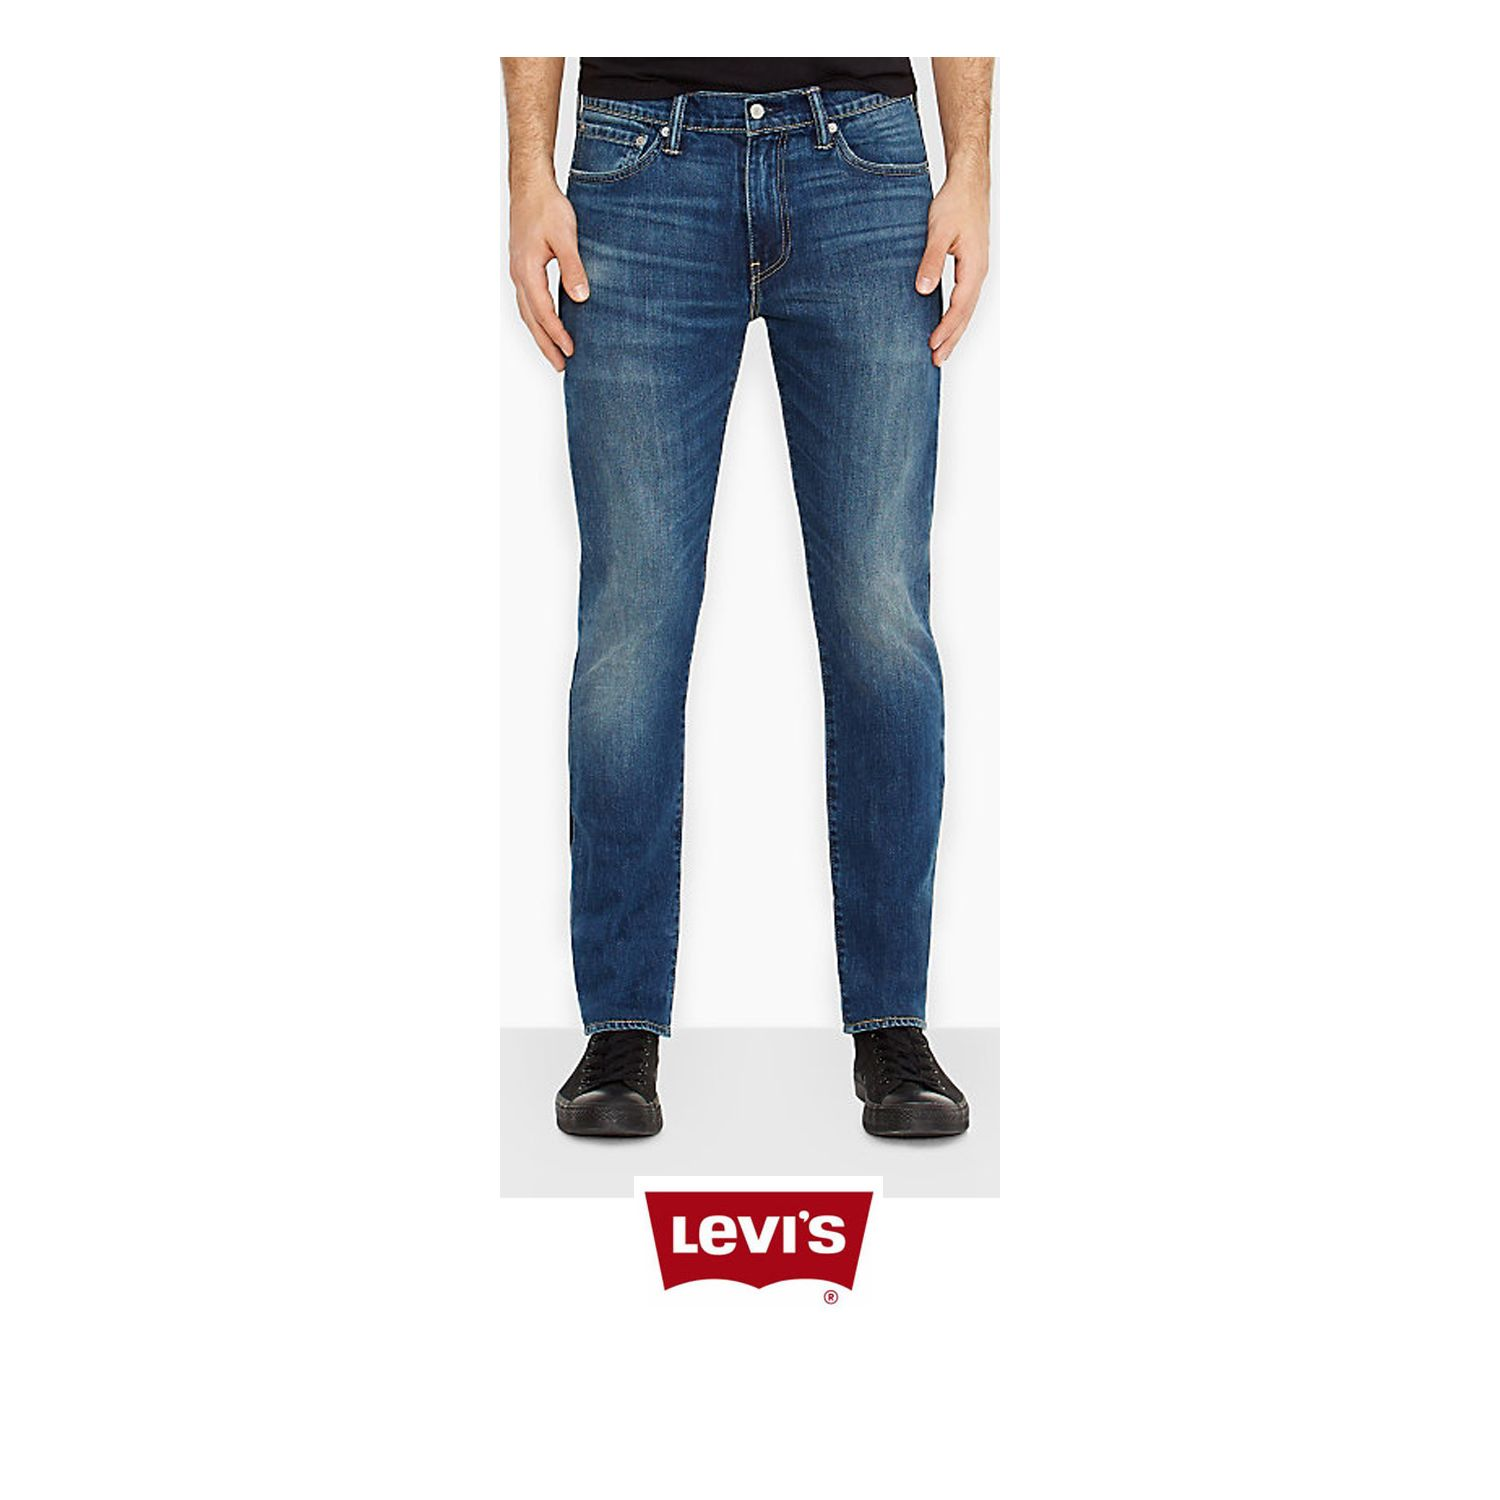 LEVI S- Jean Levis 510 Skinny Canyon coupe skinny 510.0394 - W32 L34 ded6e1023a92